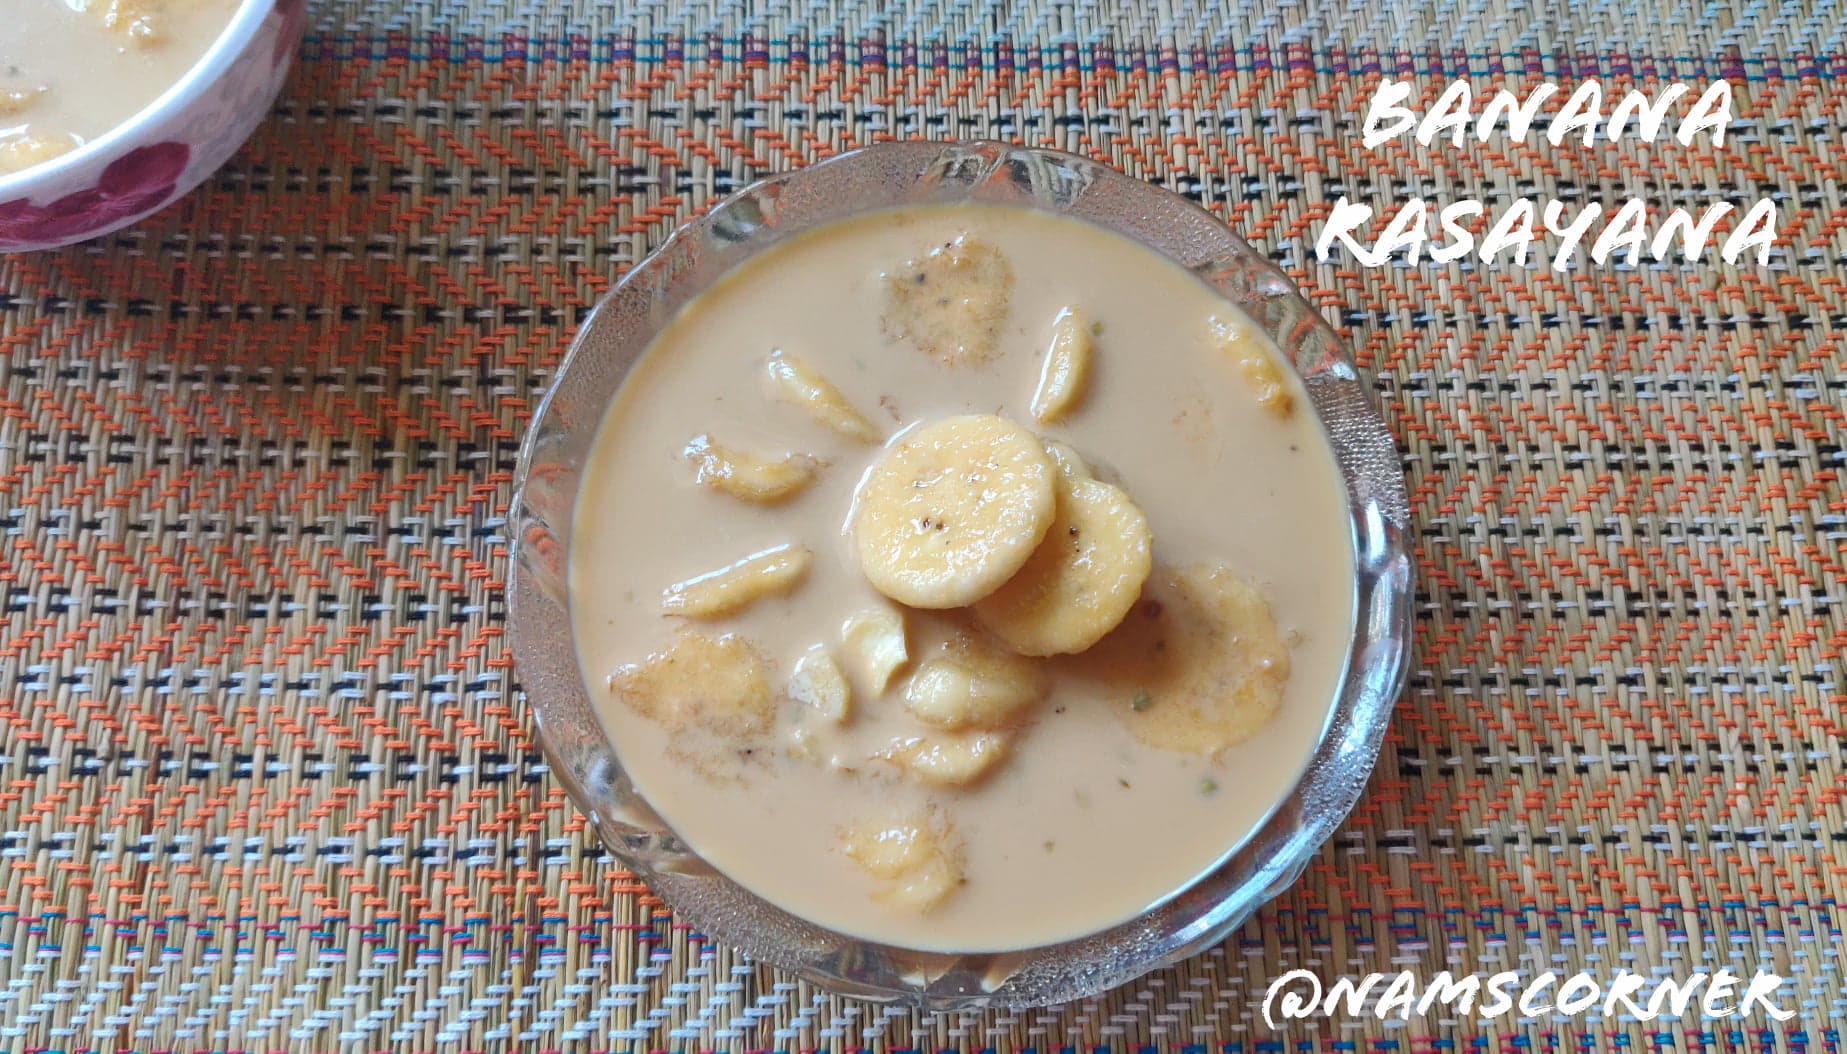 Banana Rasayana Recipe | How to make Banana Rasayana